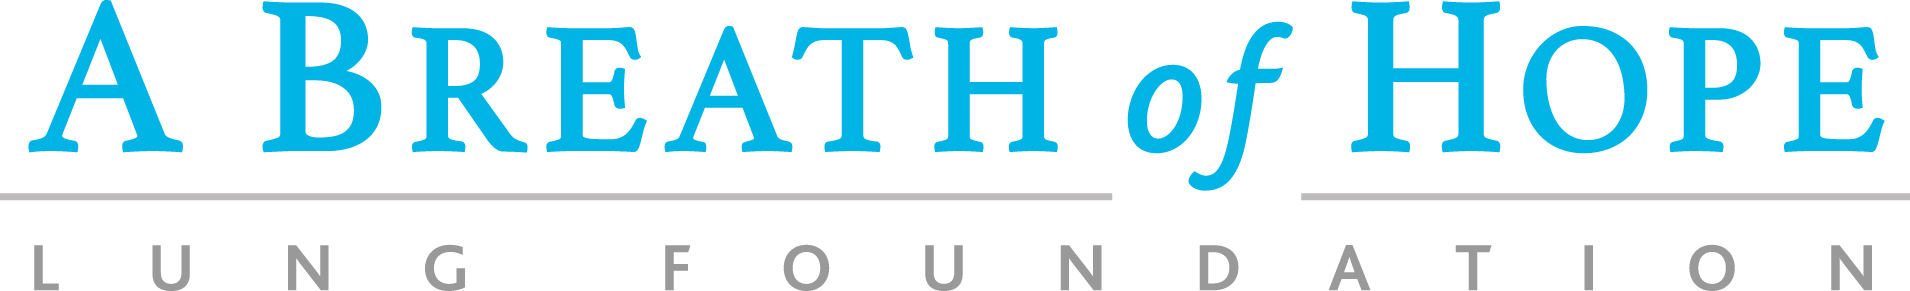 Breath of Hope Lung Foundation Logo